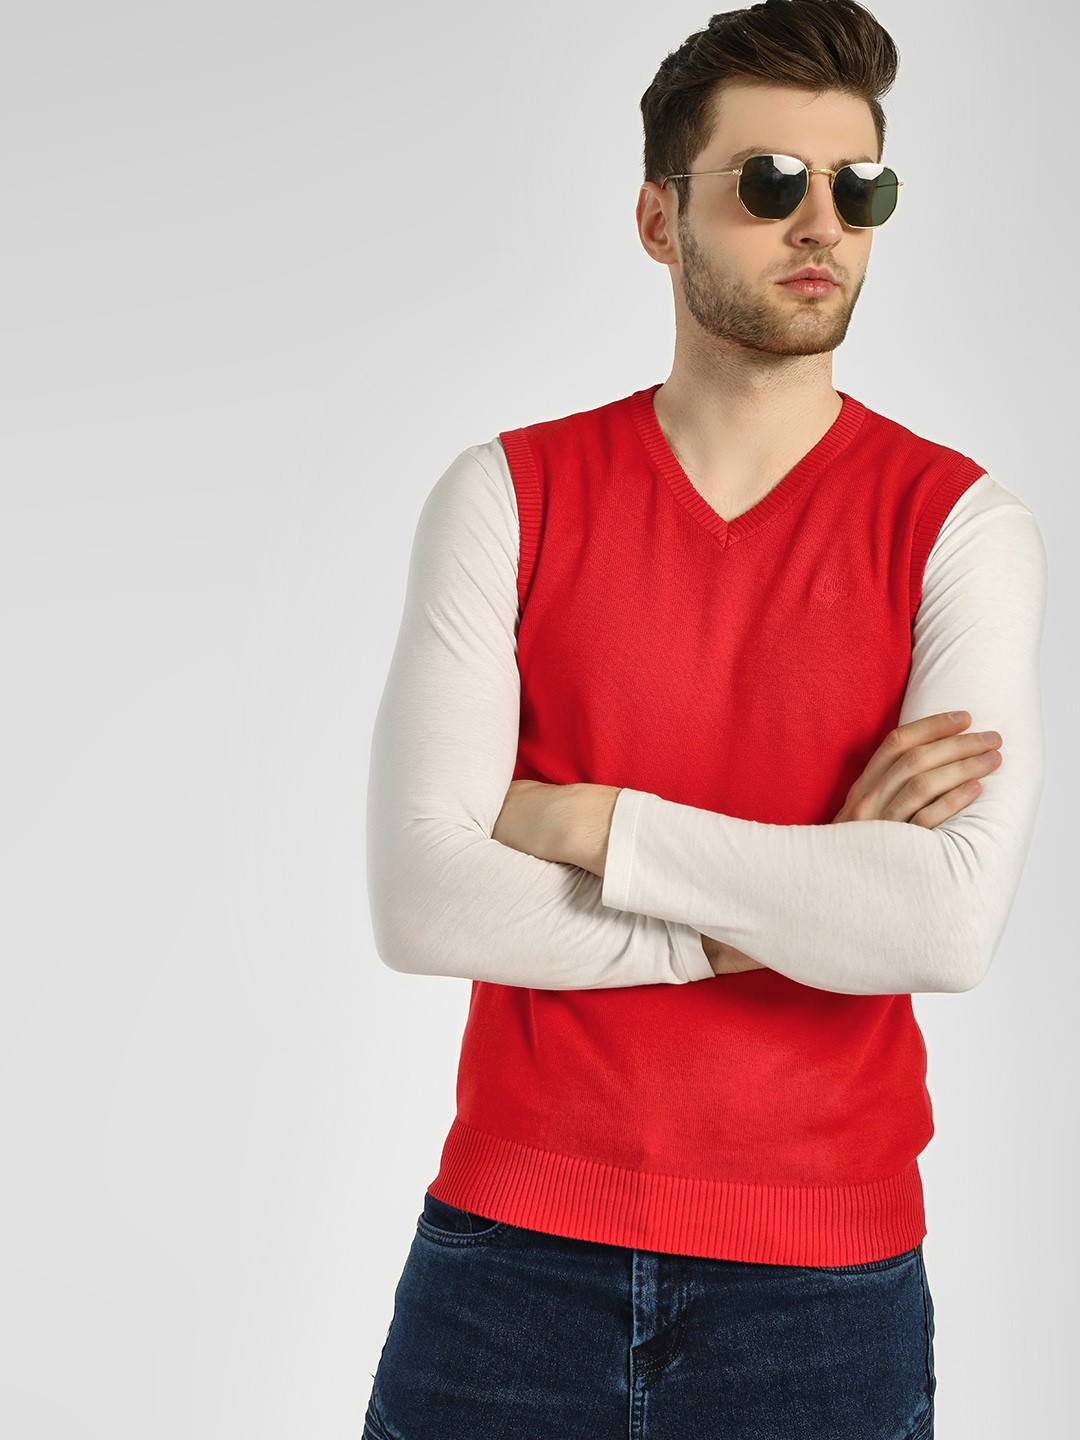 GOAT Red Sleeveless V-Neck Sweater 1